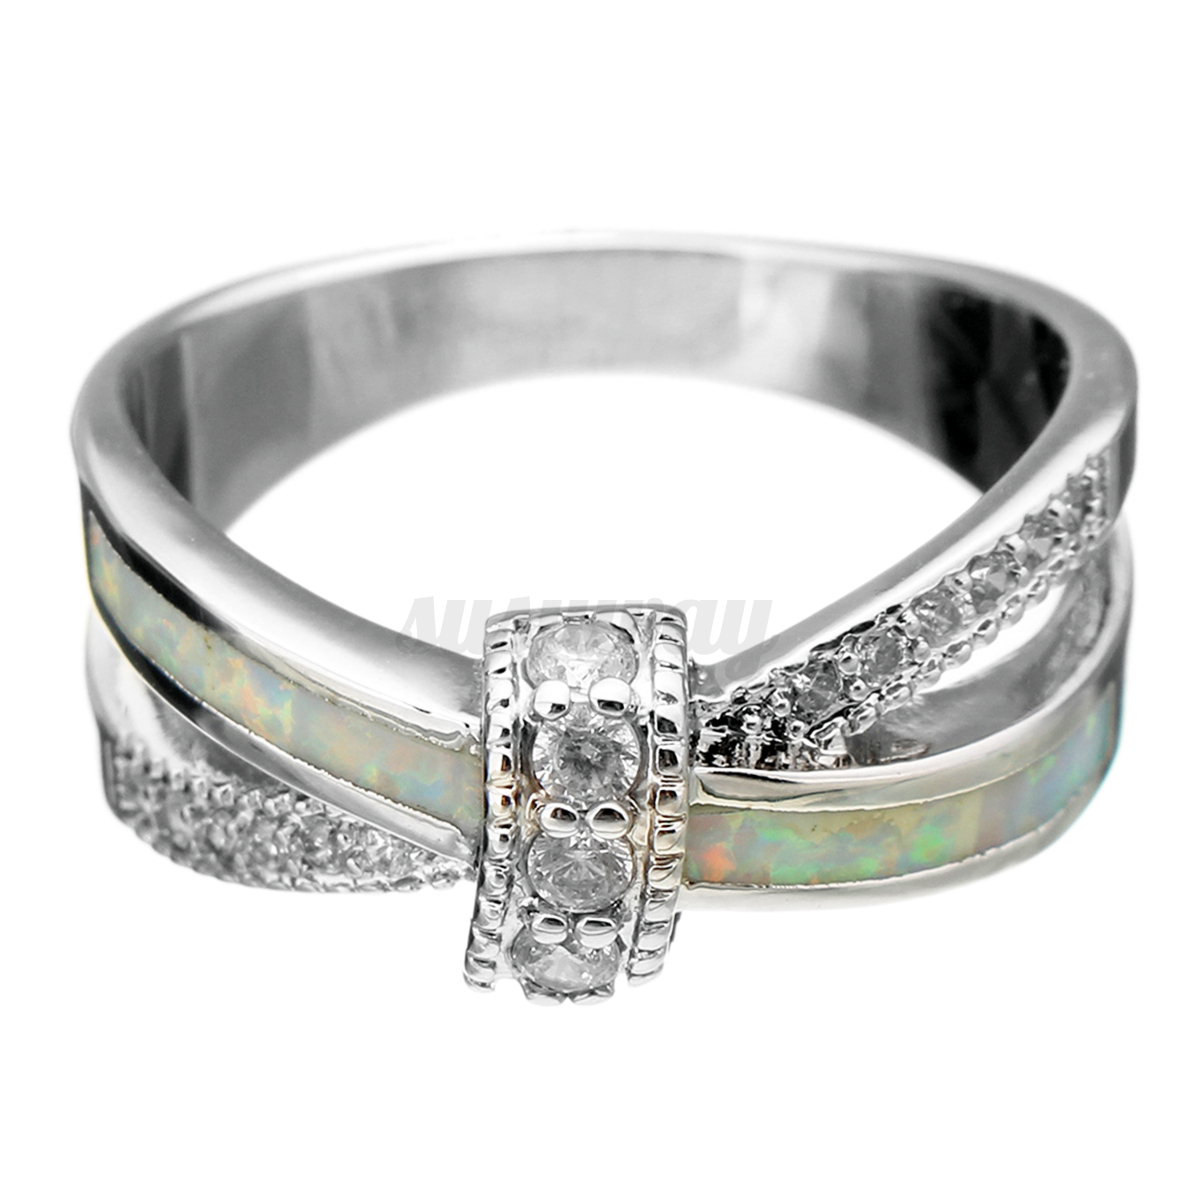 australian opal wedding engagement bangle ring silver